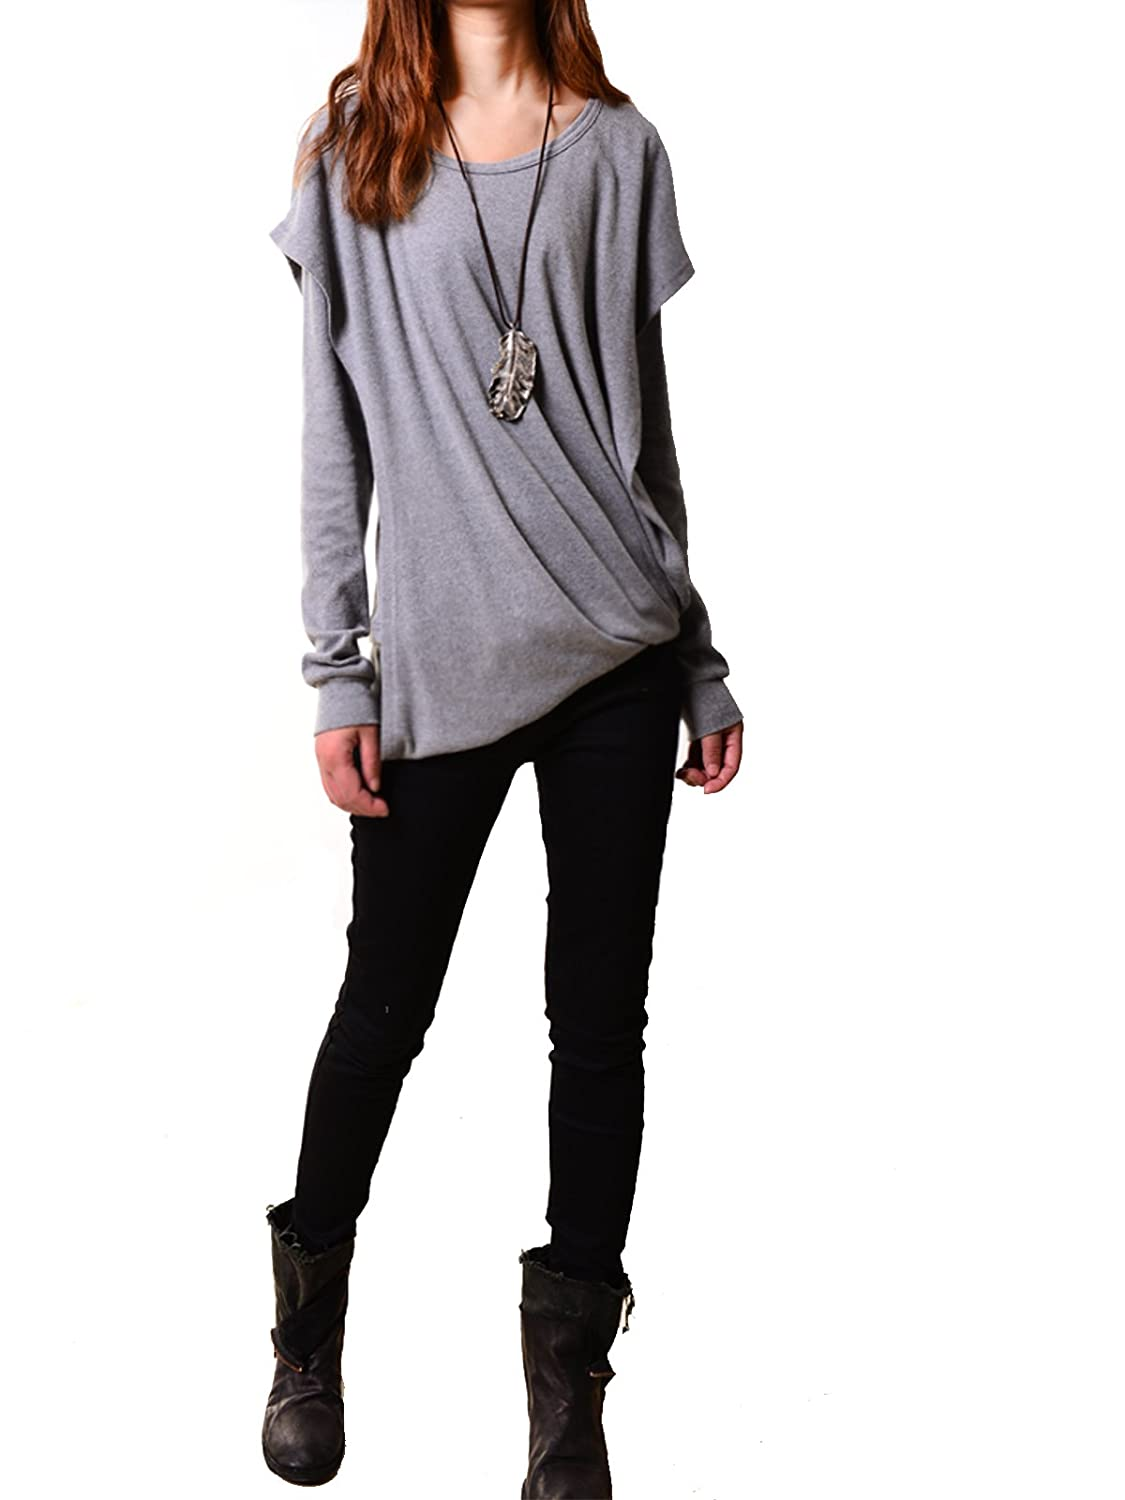 Idea2lifestyle Women's Poetic Layered Cotton Hoodie Song of Wanderer Gray